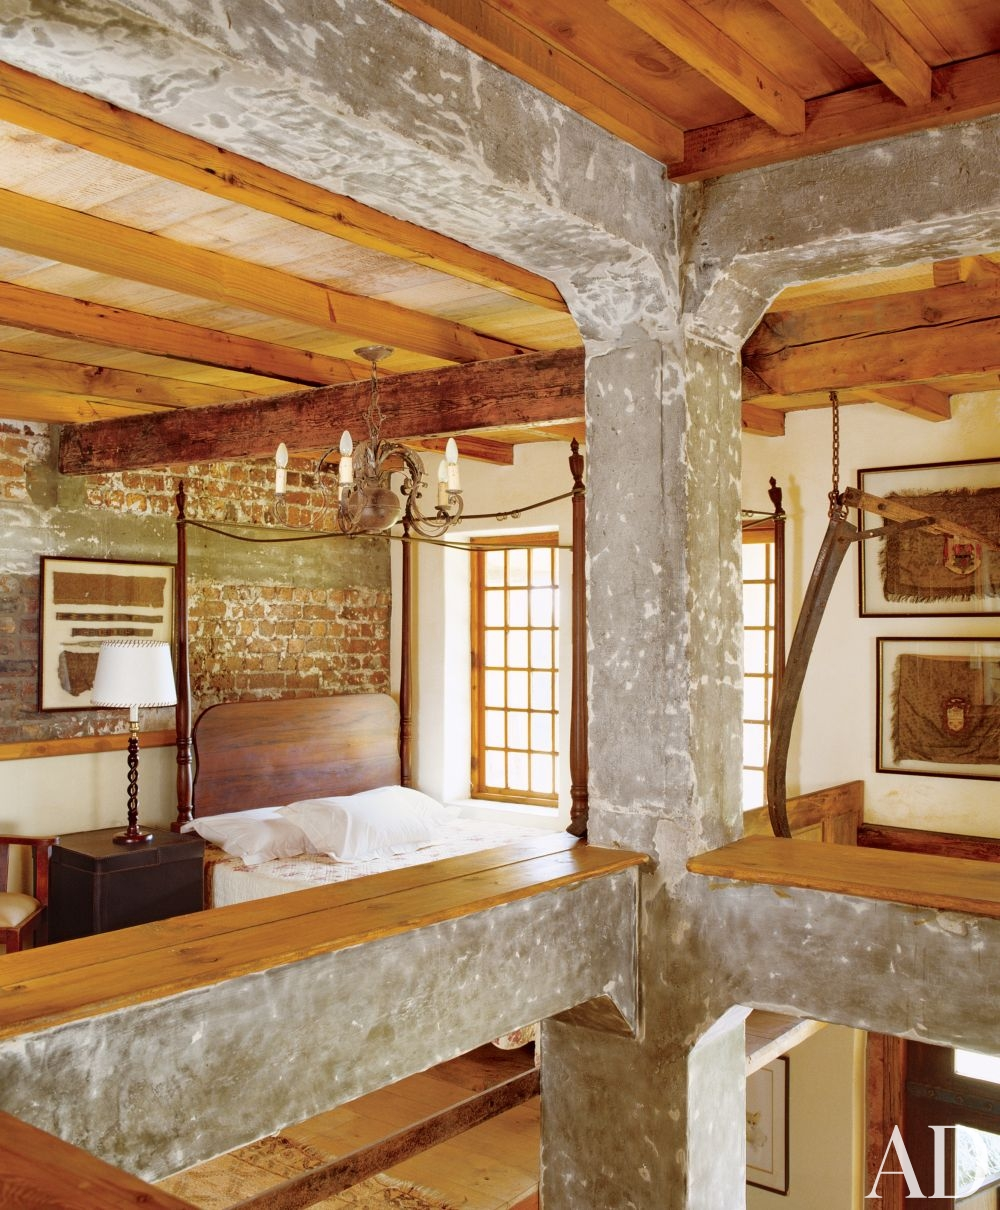 rustic-bedroom-cape-town-south-africa-200512-2_1000-watermarked